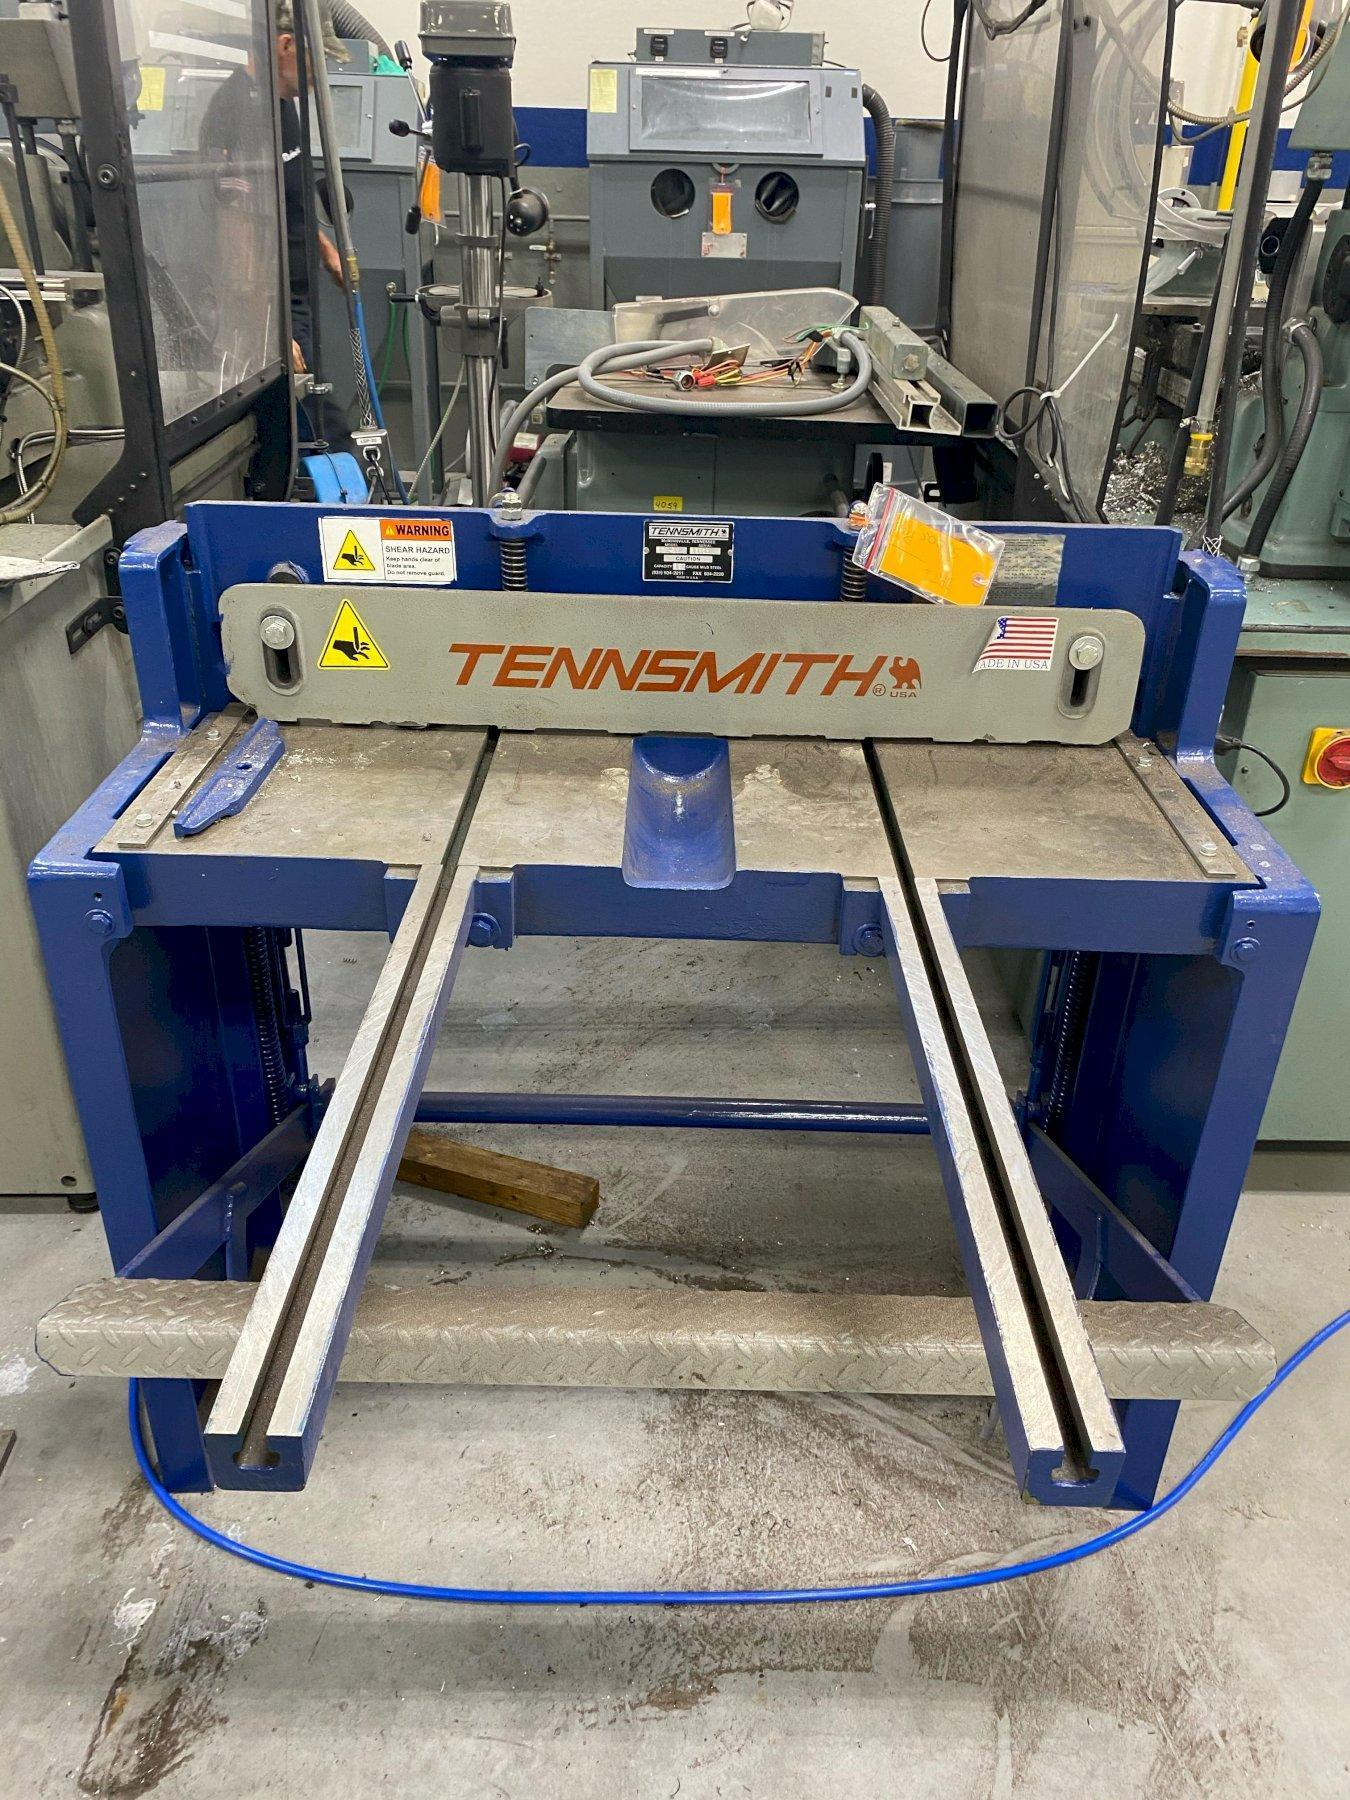 Tennsmith 16-gauge Foot Shear Model T36-16